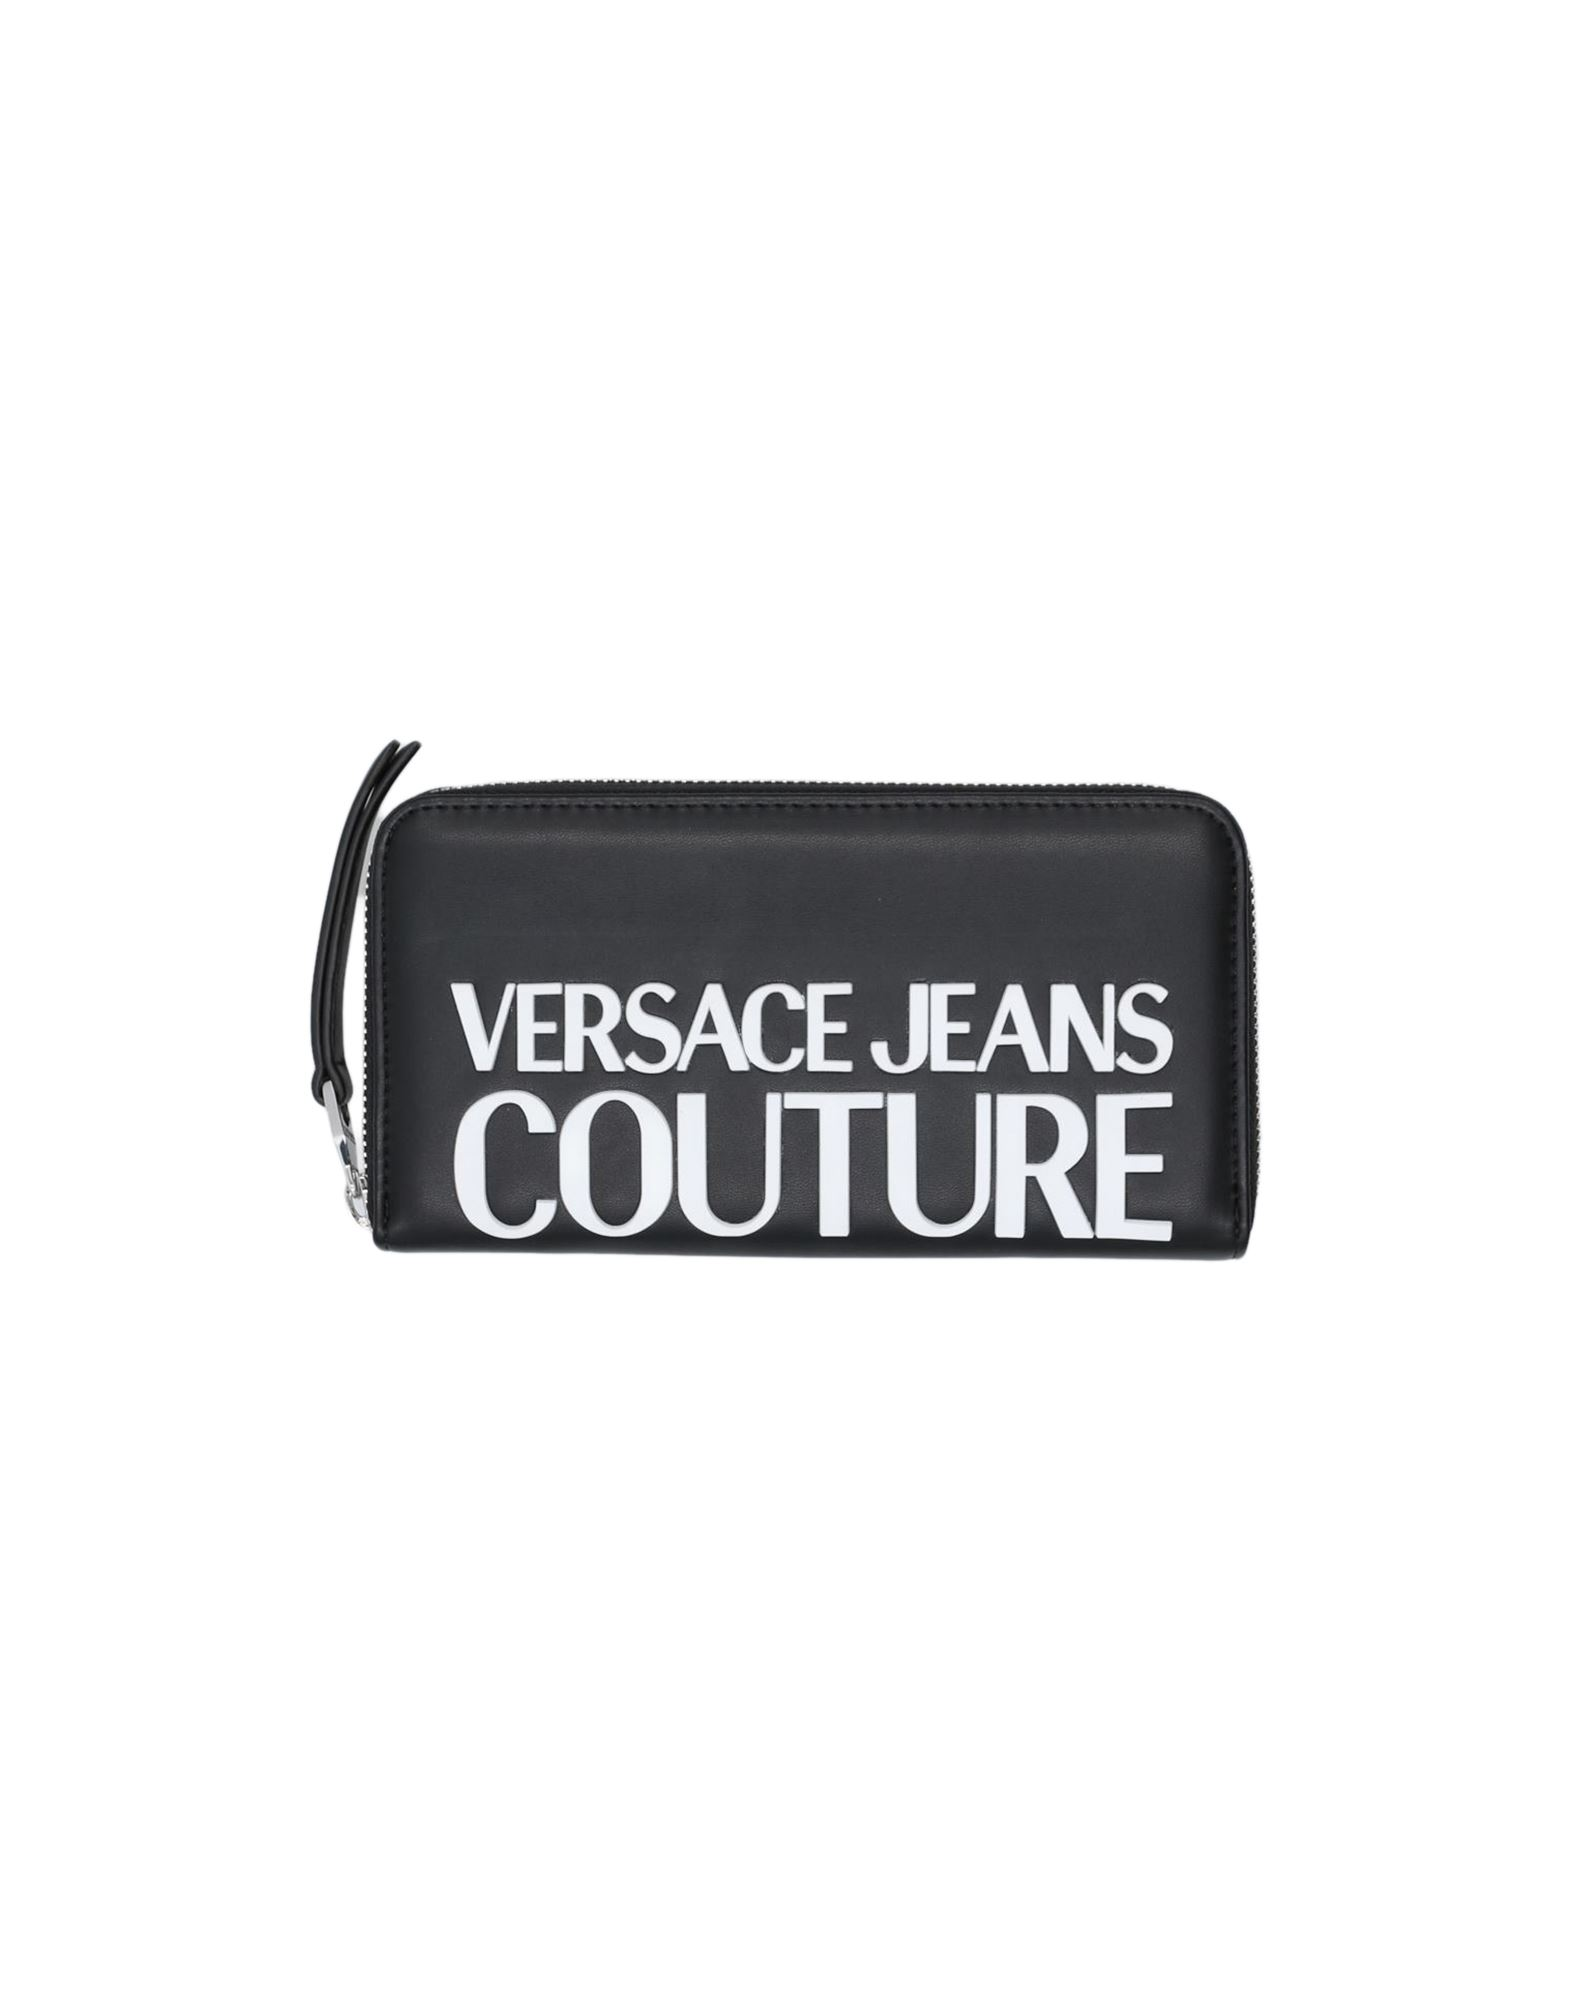 VERSACE JEANS COUTURE Бумажник